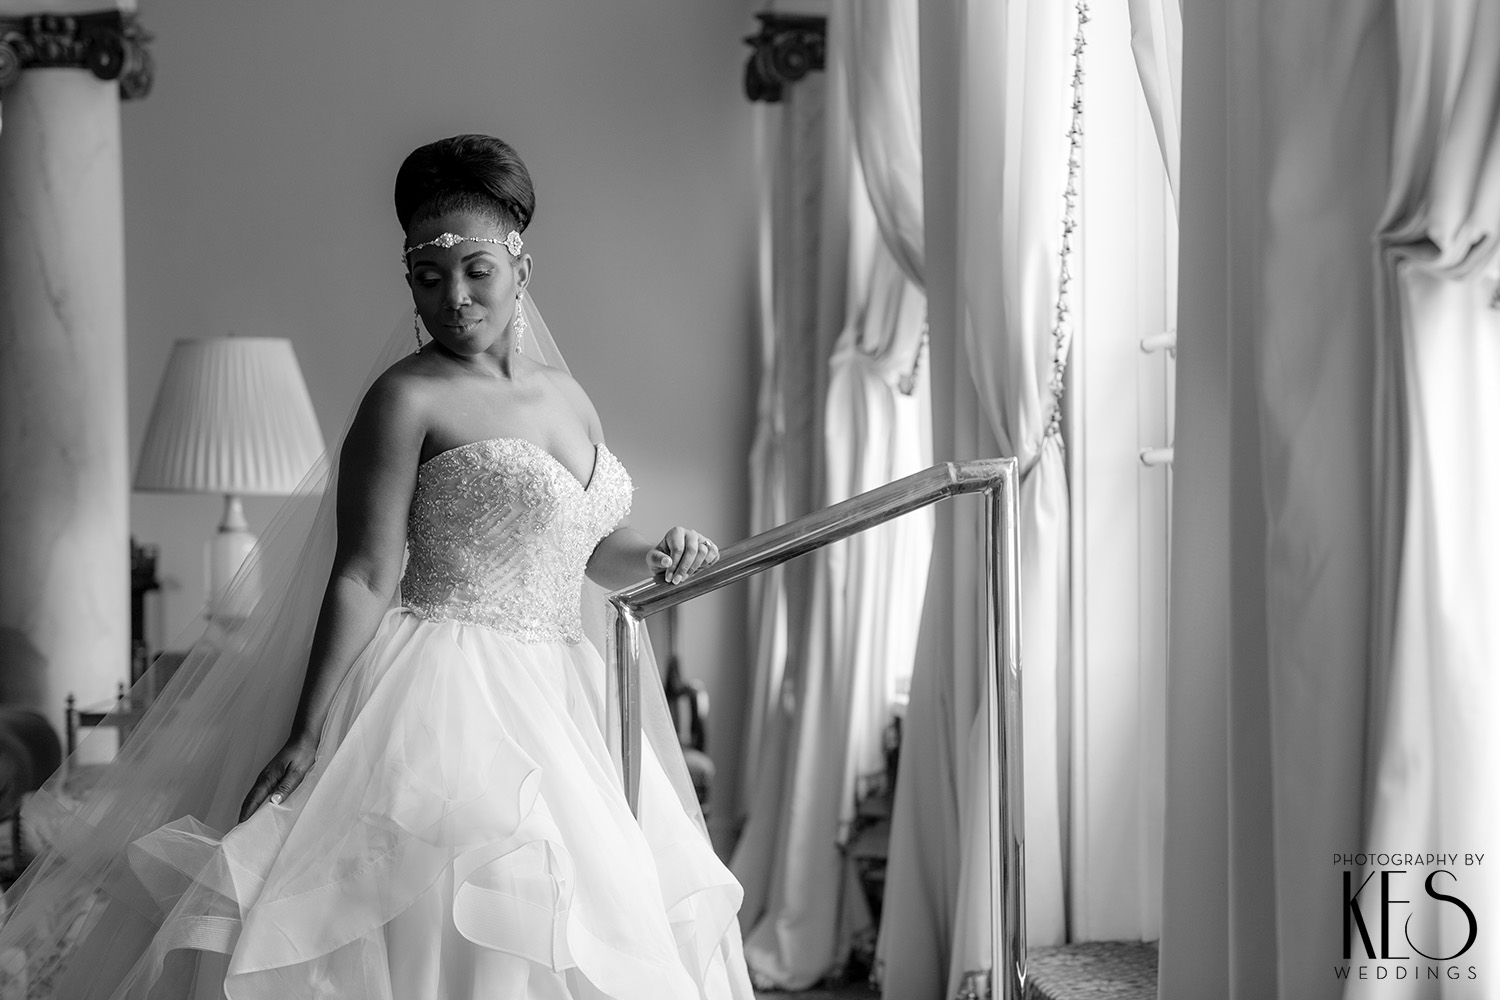 KES Weddings Bridal Photos Capital Hotel11.JPG